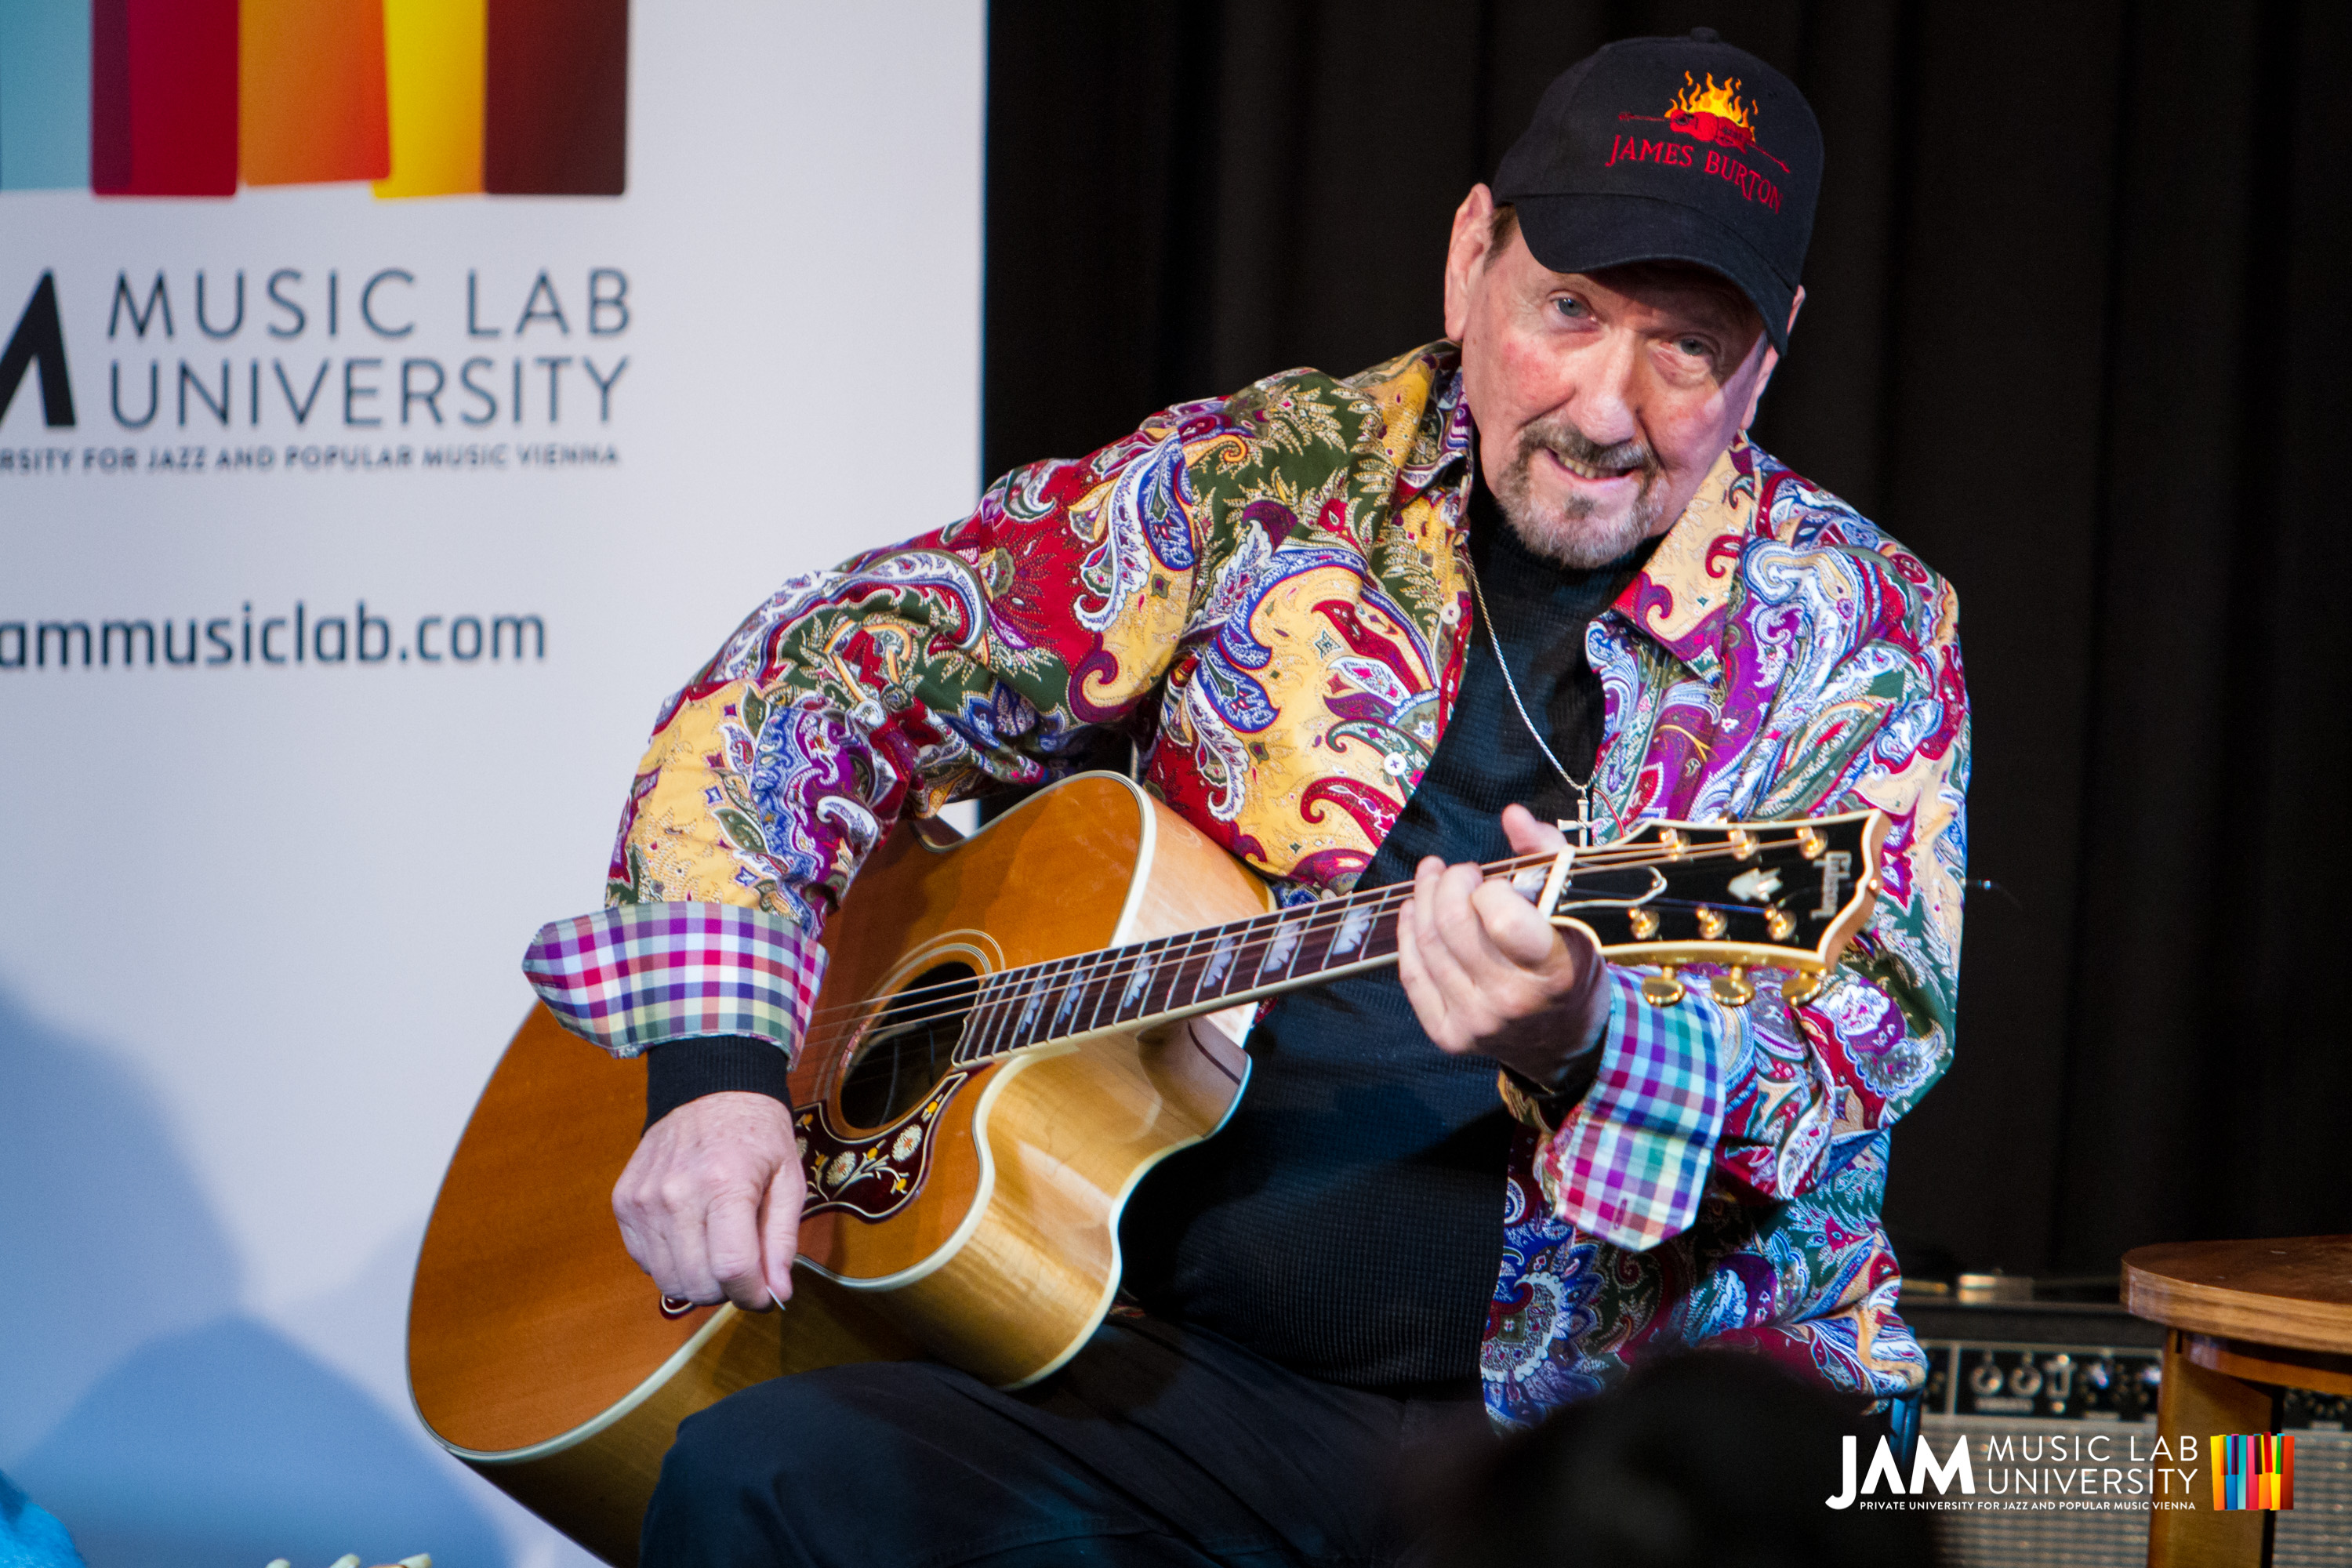 James Burton at JAM MUSIC LAB | Jam Music Lab University